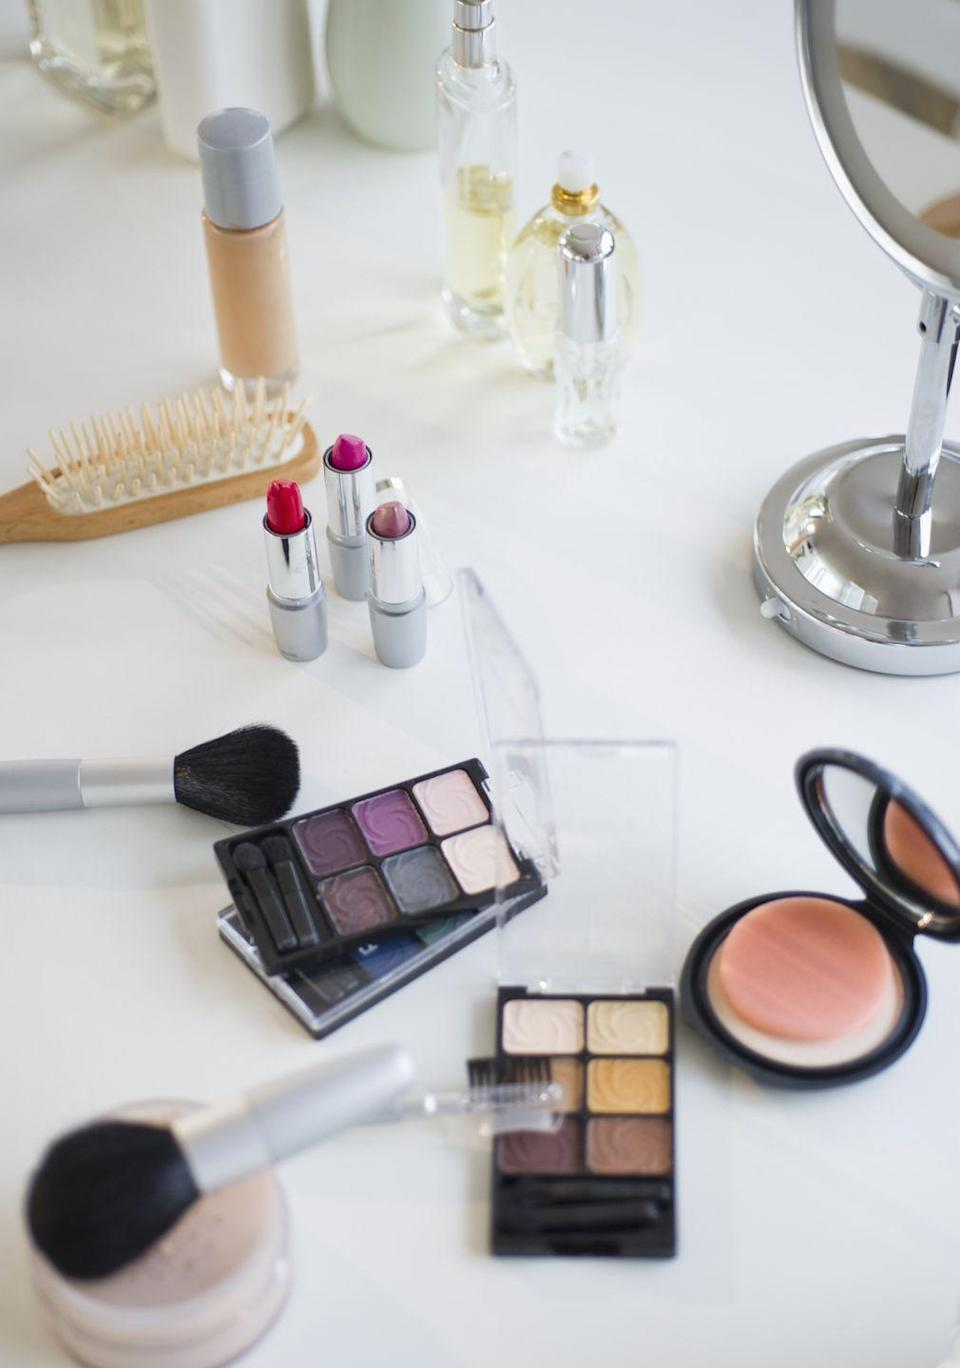 "<p>Concealers and liquid foundation <a href=""http://www.goodhousekeeping.com/beauty/makeup/tips/a17714/expired-beauty-products/"" rel=""nofollow noopener"" target=""_blank"" data-ylk=""slk:can last"" class=""link rapid-noclick-resp"">can last</a> for six months. After that you risk bacteria growing in the vile (yum!) while mascara should be chucked after three months. The good news is that your favorite lipstick and gloss can keep for two years.</p>"